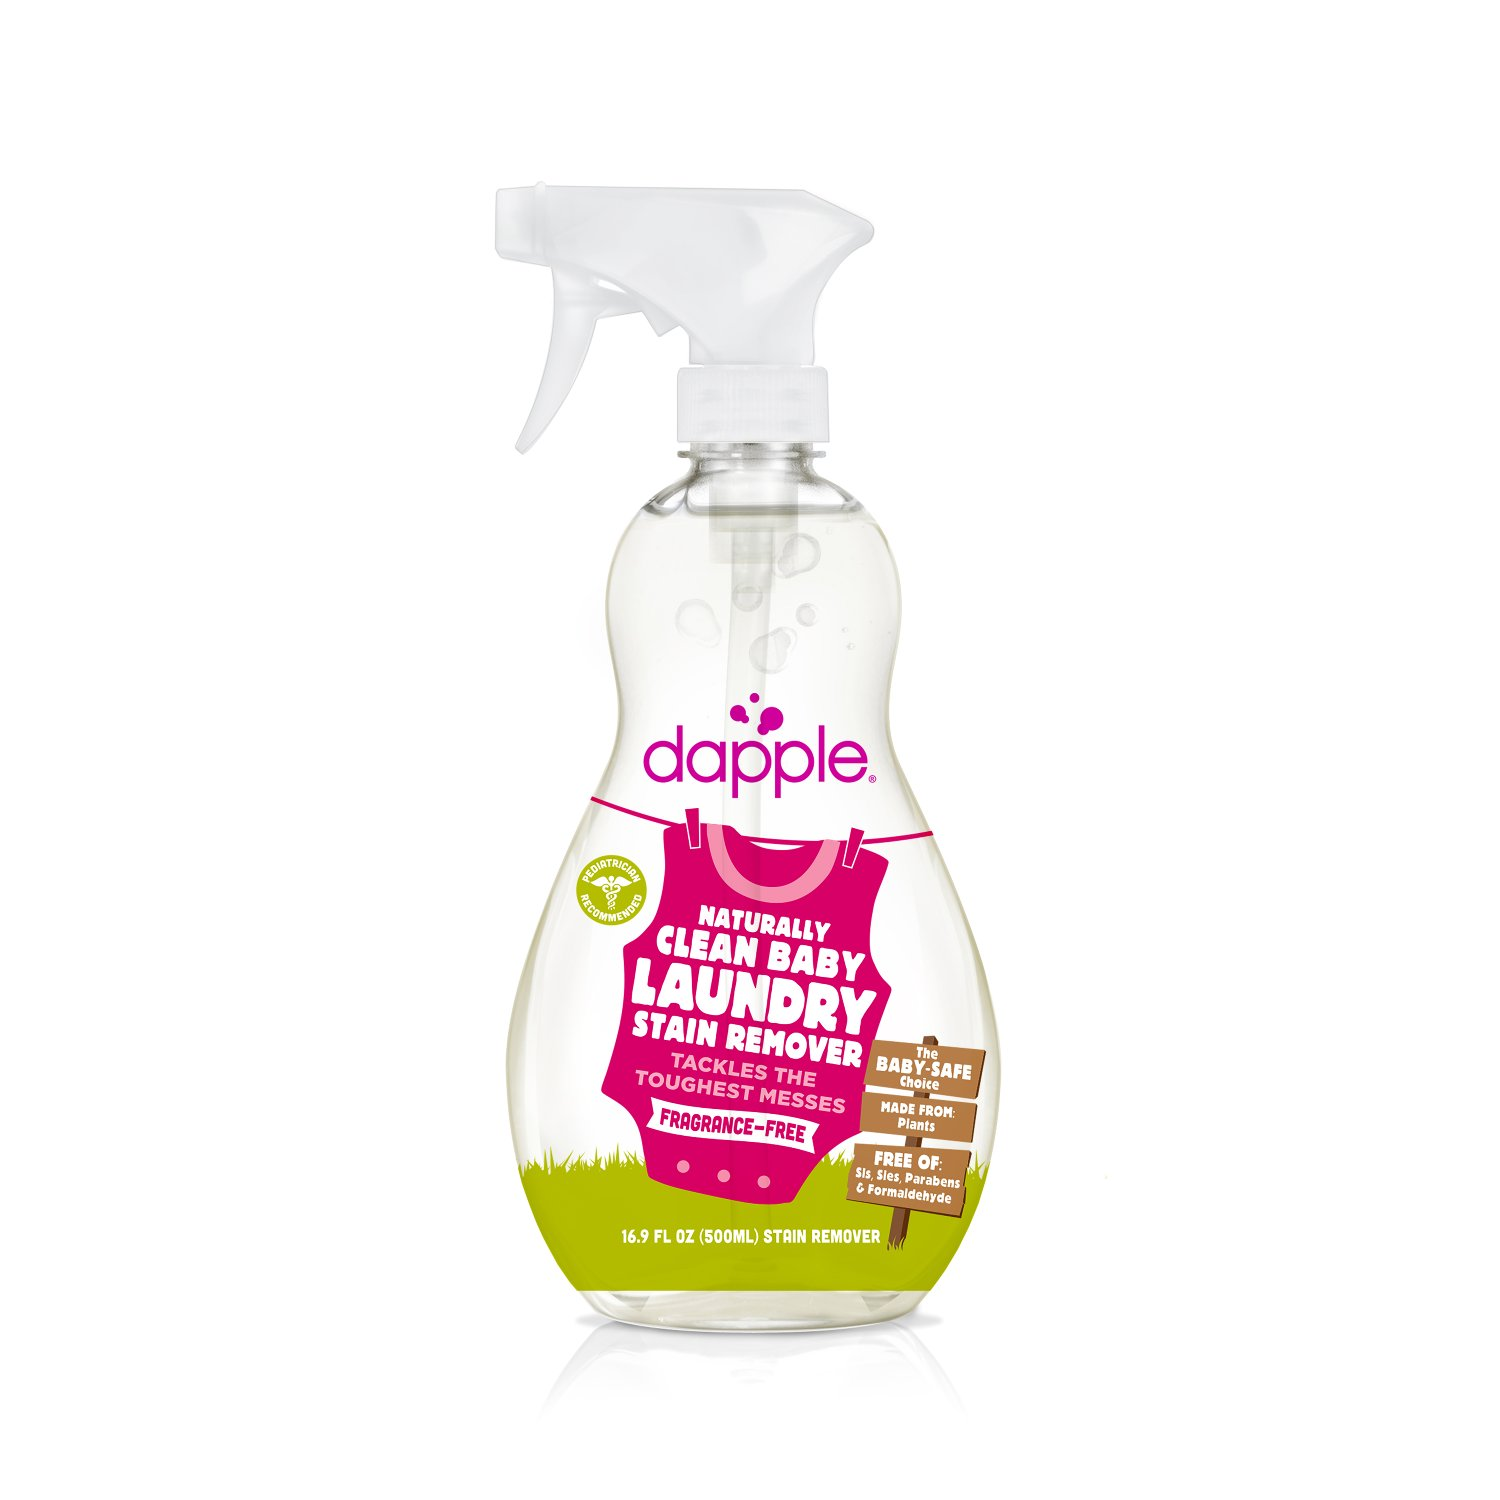 Quirks Marketing Philippines - Dapple - Naturally Clean Baby Laundry Spray